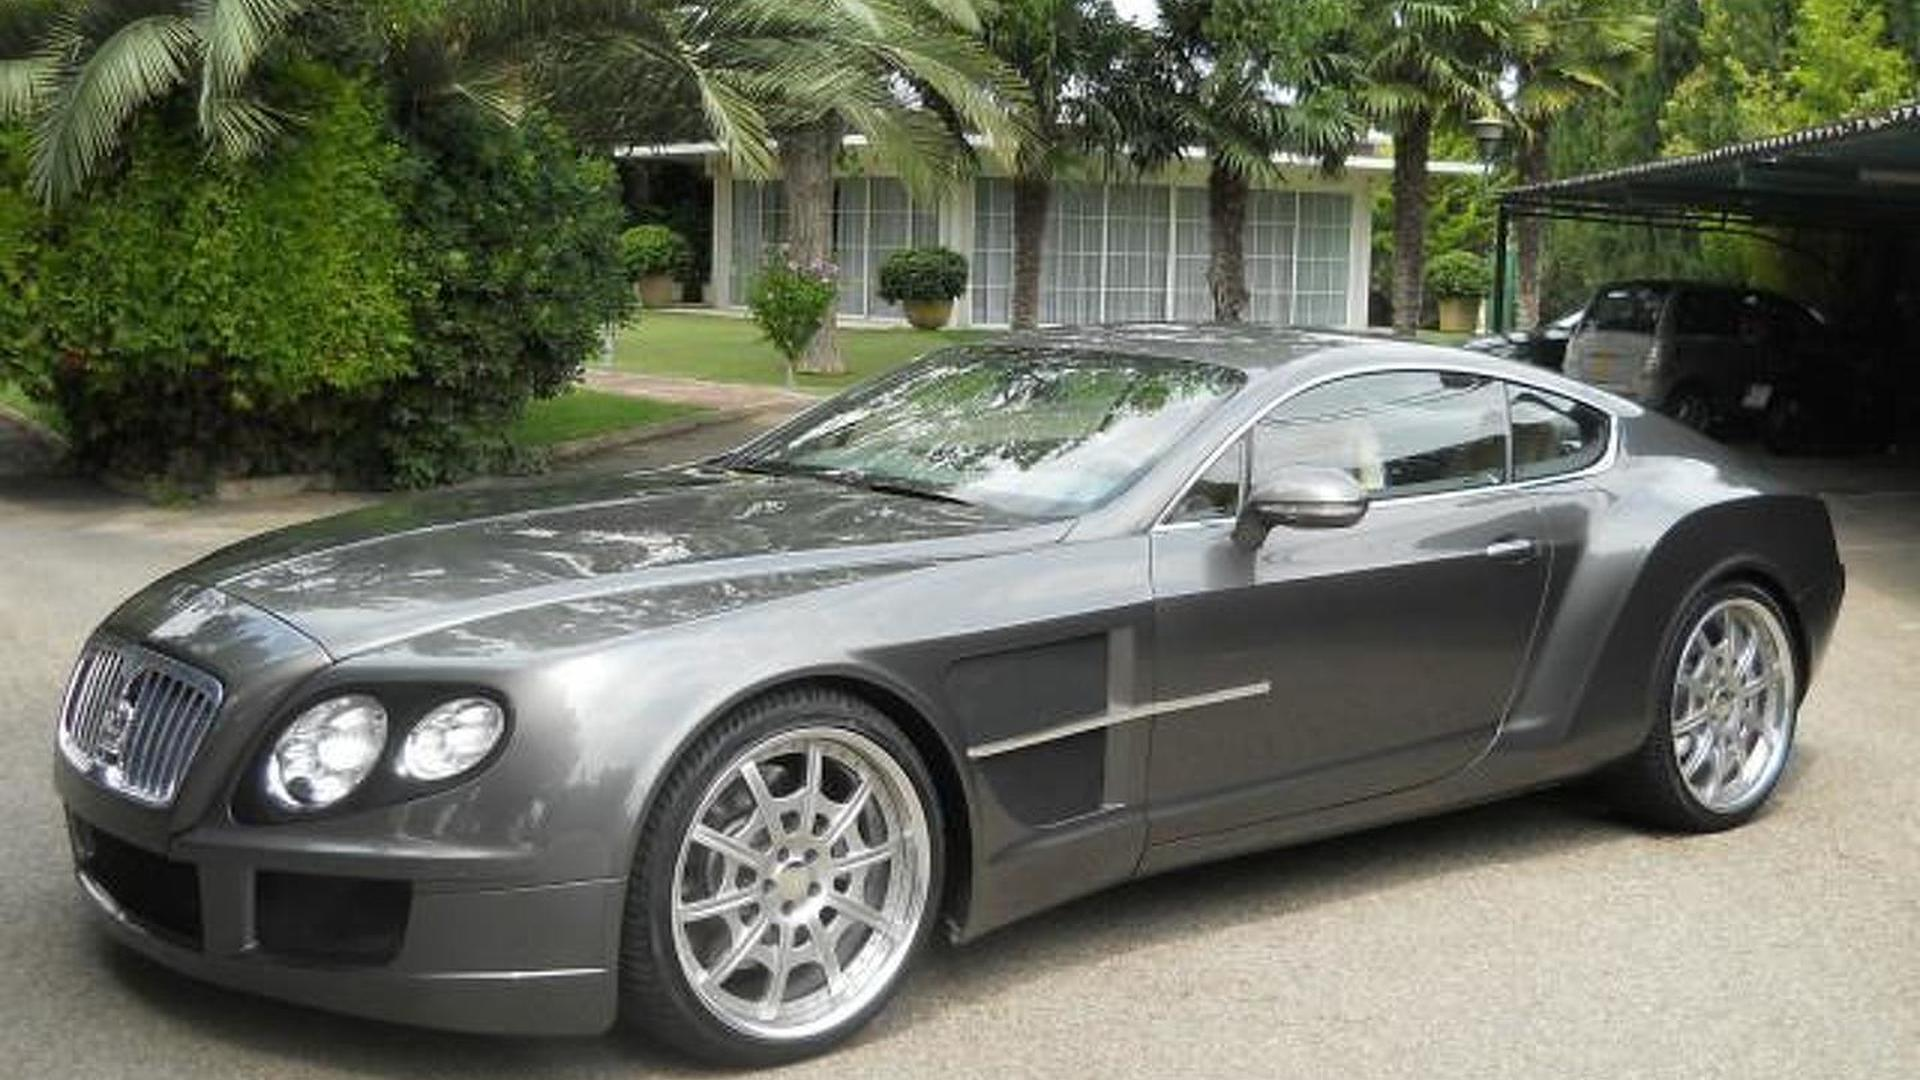 s stock htm c ct gt main used sale bentley convertible for greenwich continental l phantom